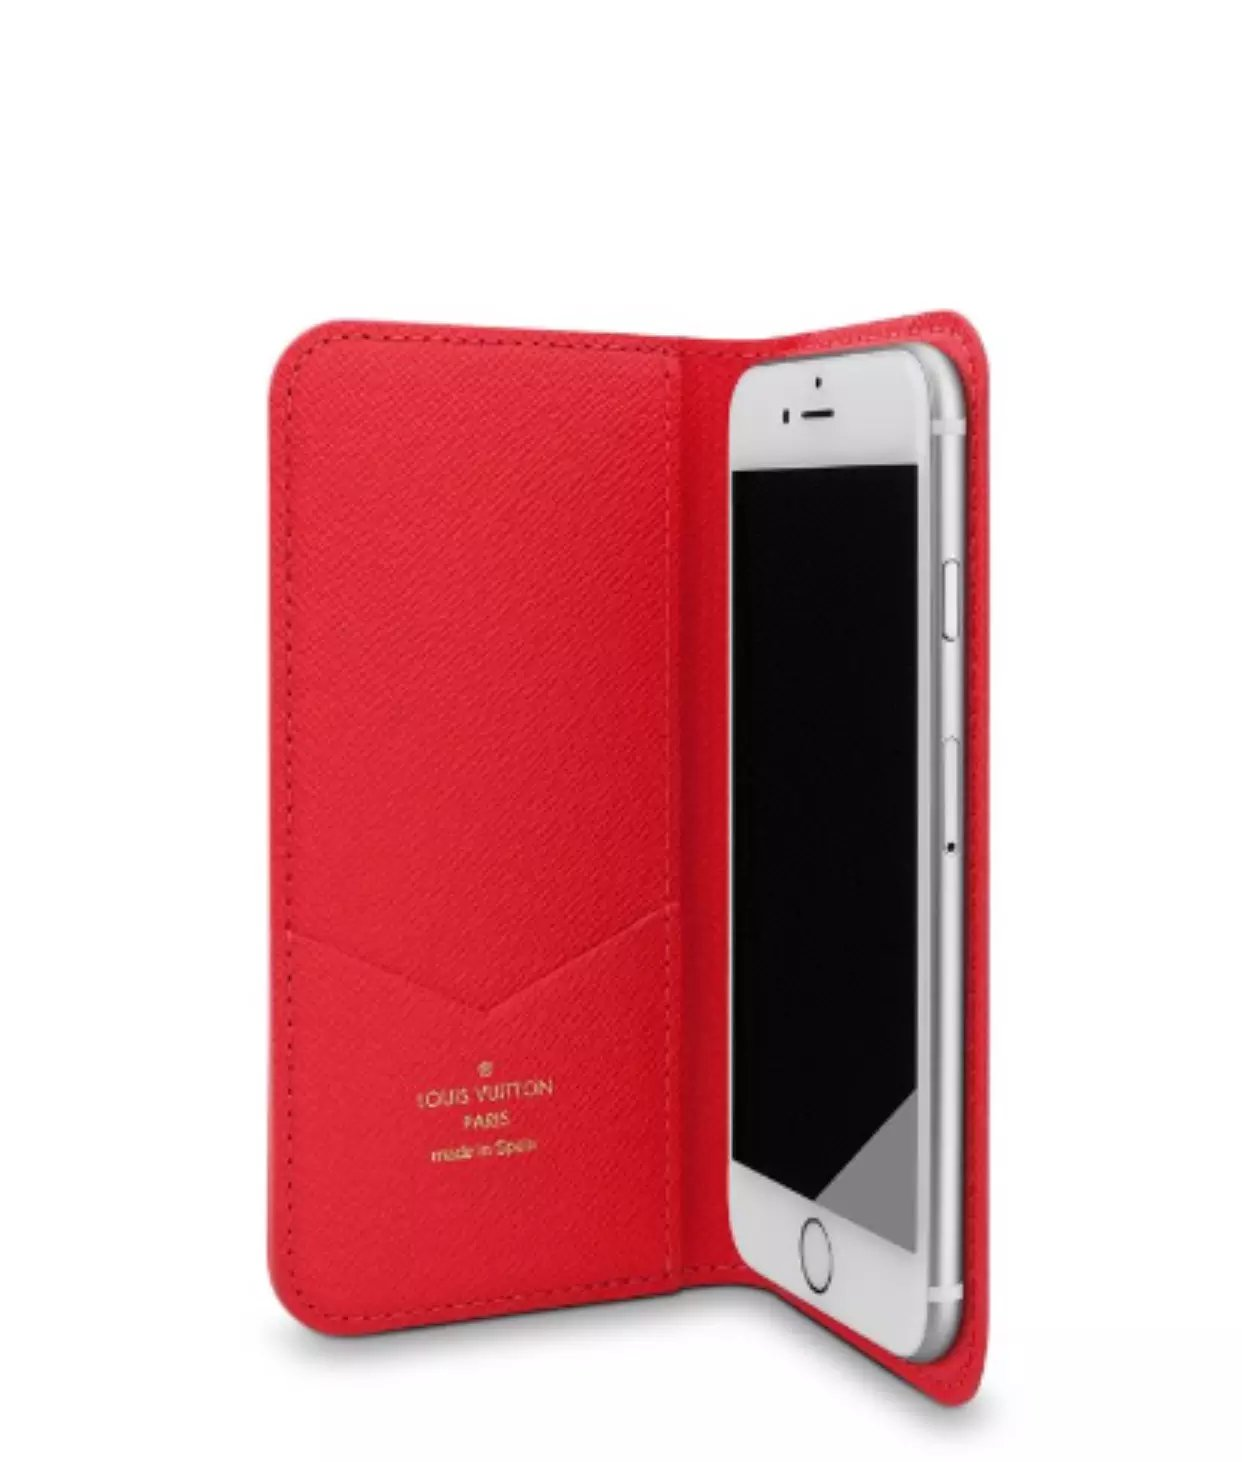 most popular iphone 6s Plus cases iphone 6s Plus apple cover fashion iphone6s plus case designer iphone 6 wallet case cell phone case sites mobile phone case shop branded iphone 6s cases mophie iphone 6 juice pack case cover for iphone 6s